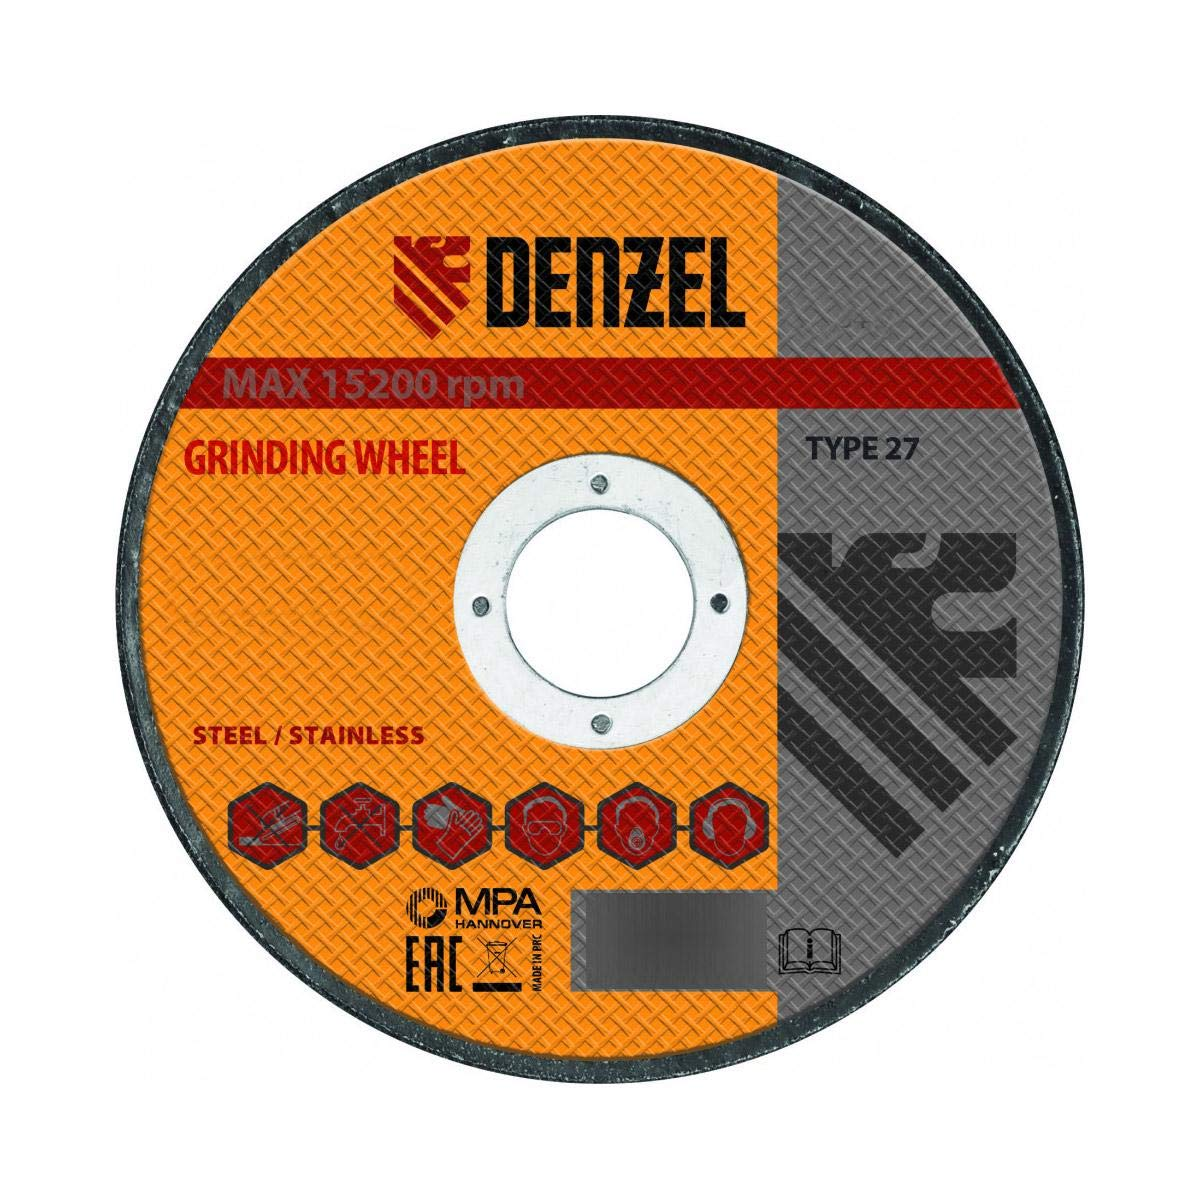 DENZEL Flap Grinding Wheel, Zirconia, Type 29-4 1/2